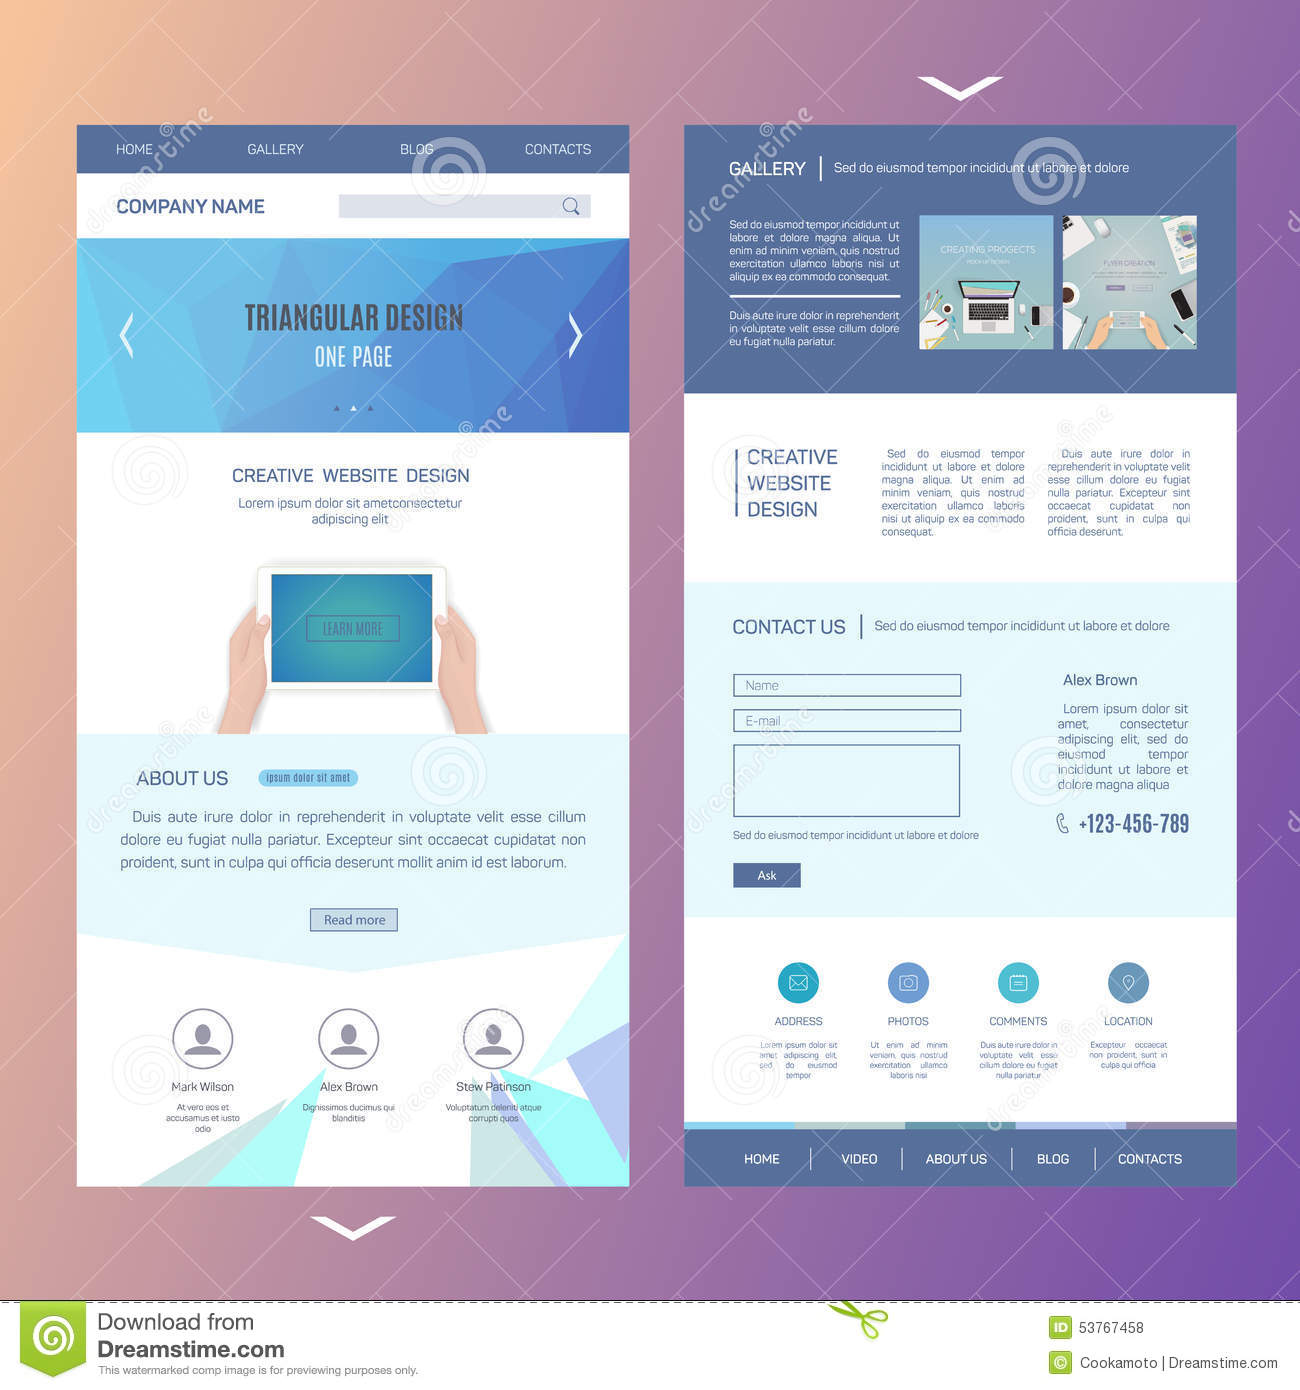 Modern One Page Website Template Design With Stock Vector - Image ...